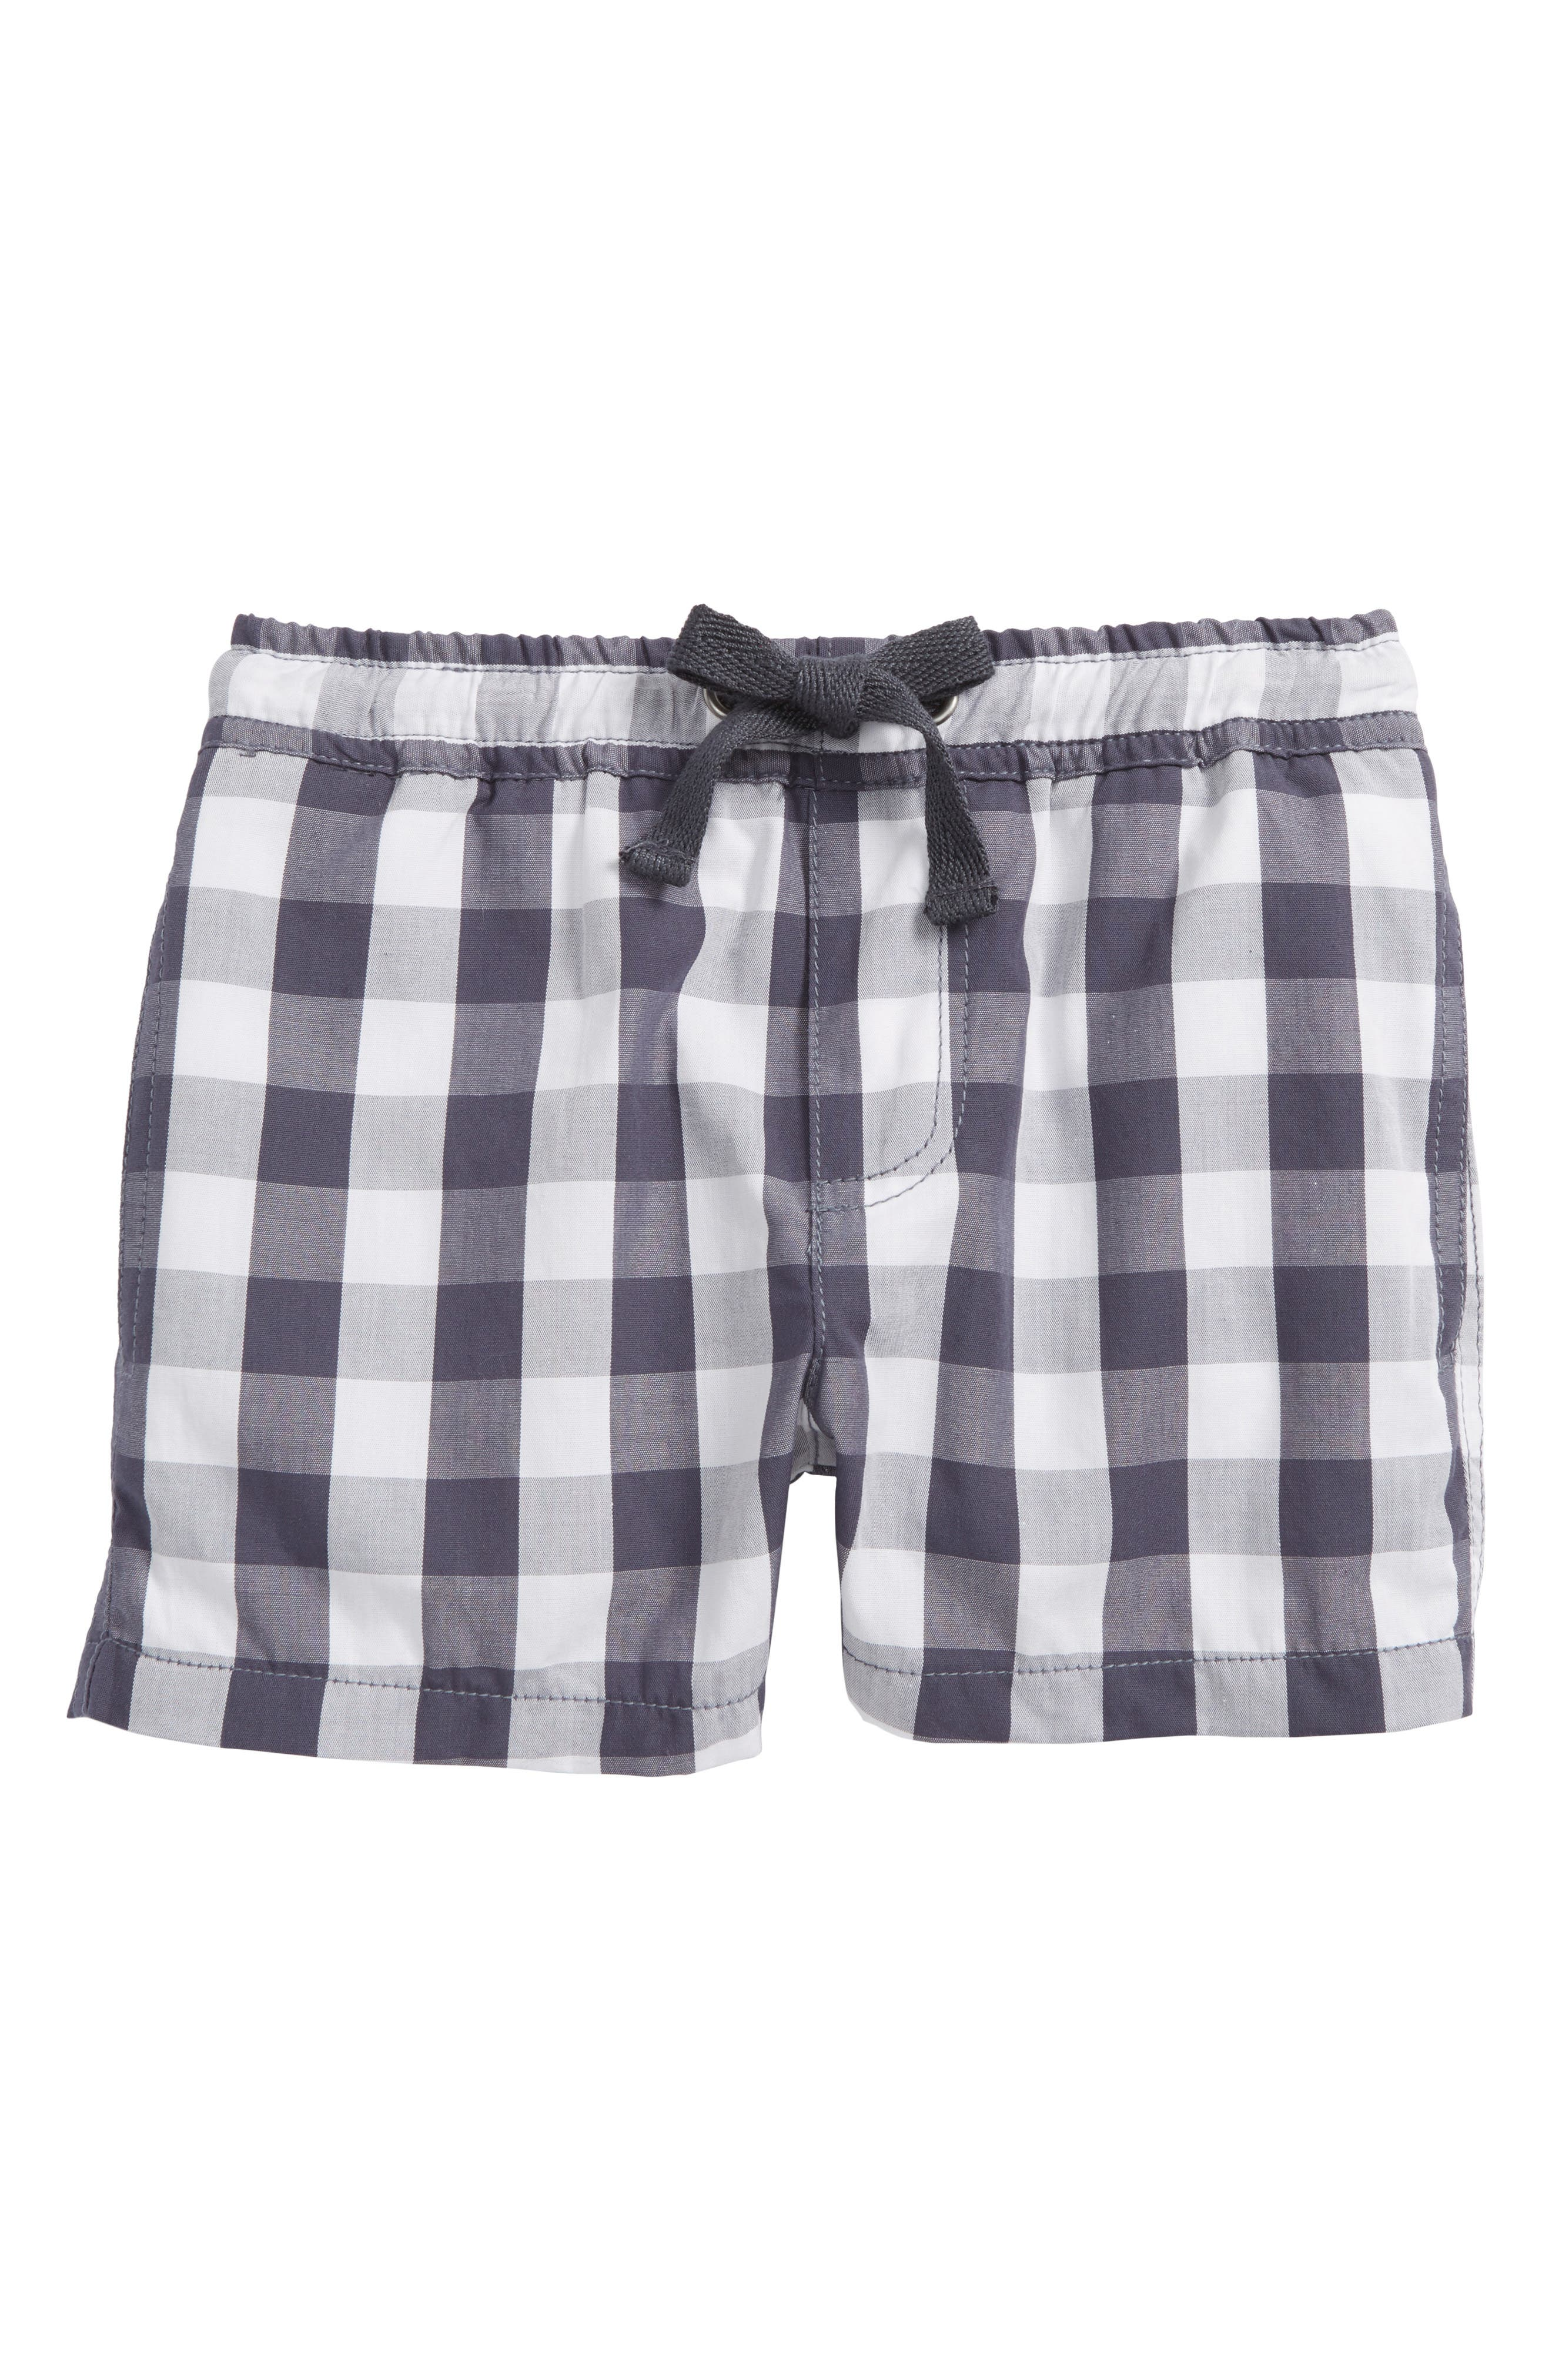 Anders Gingham Shorts,                         Main,                         color, Greyblue